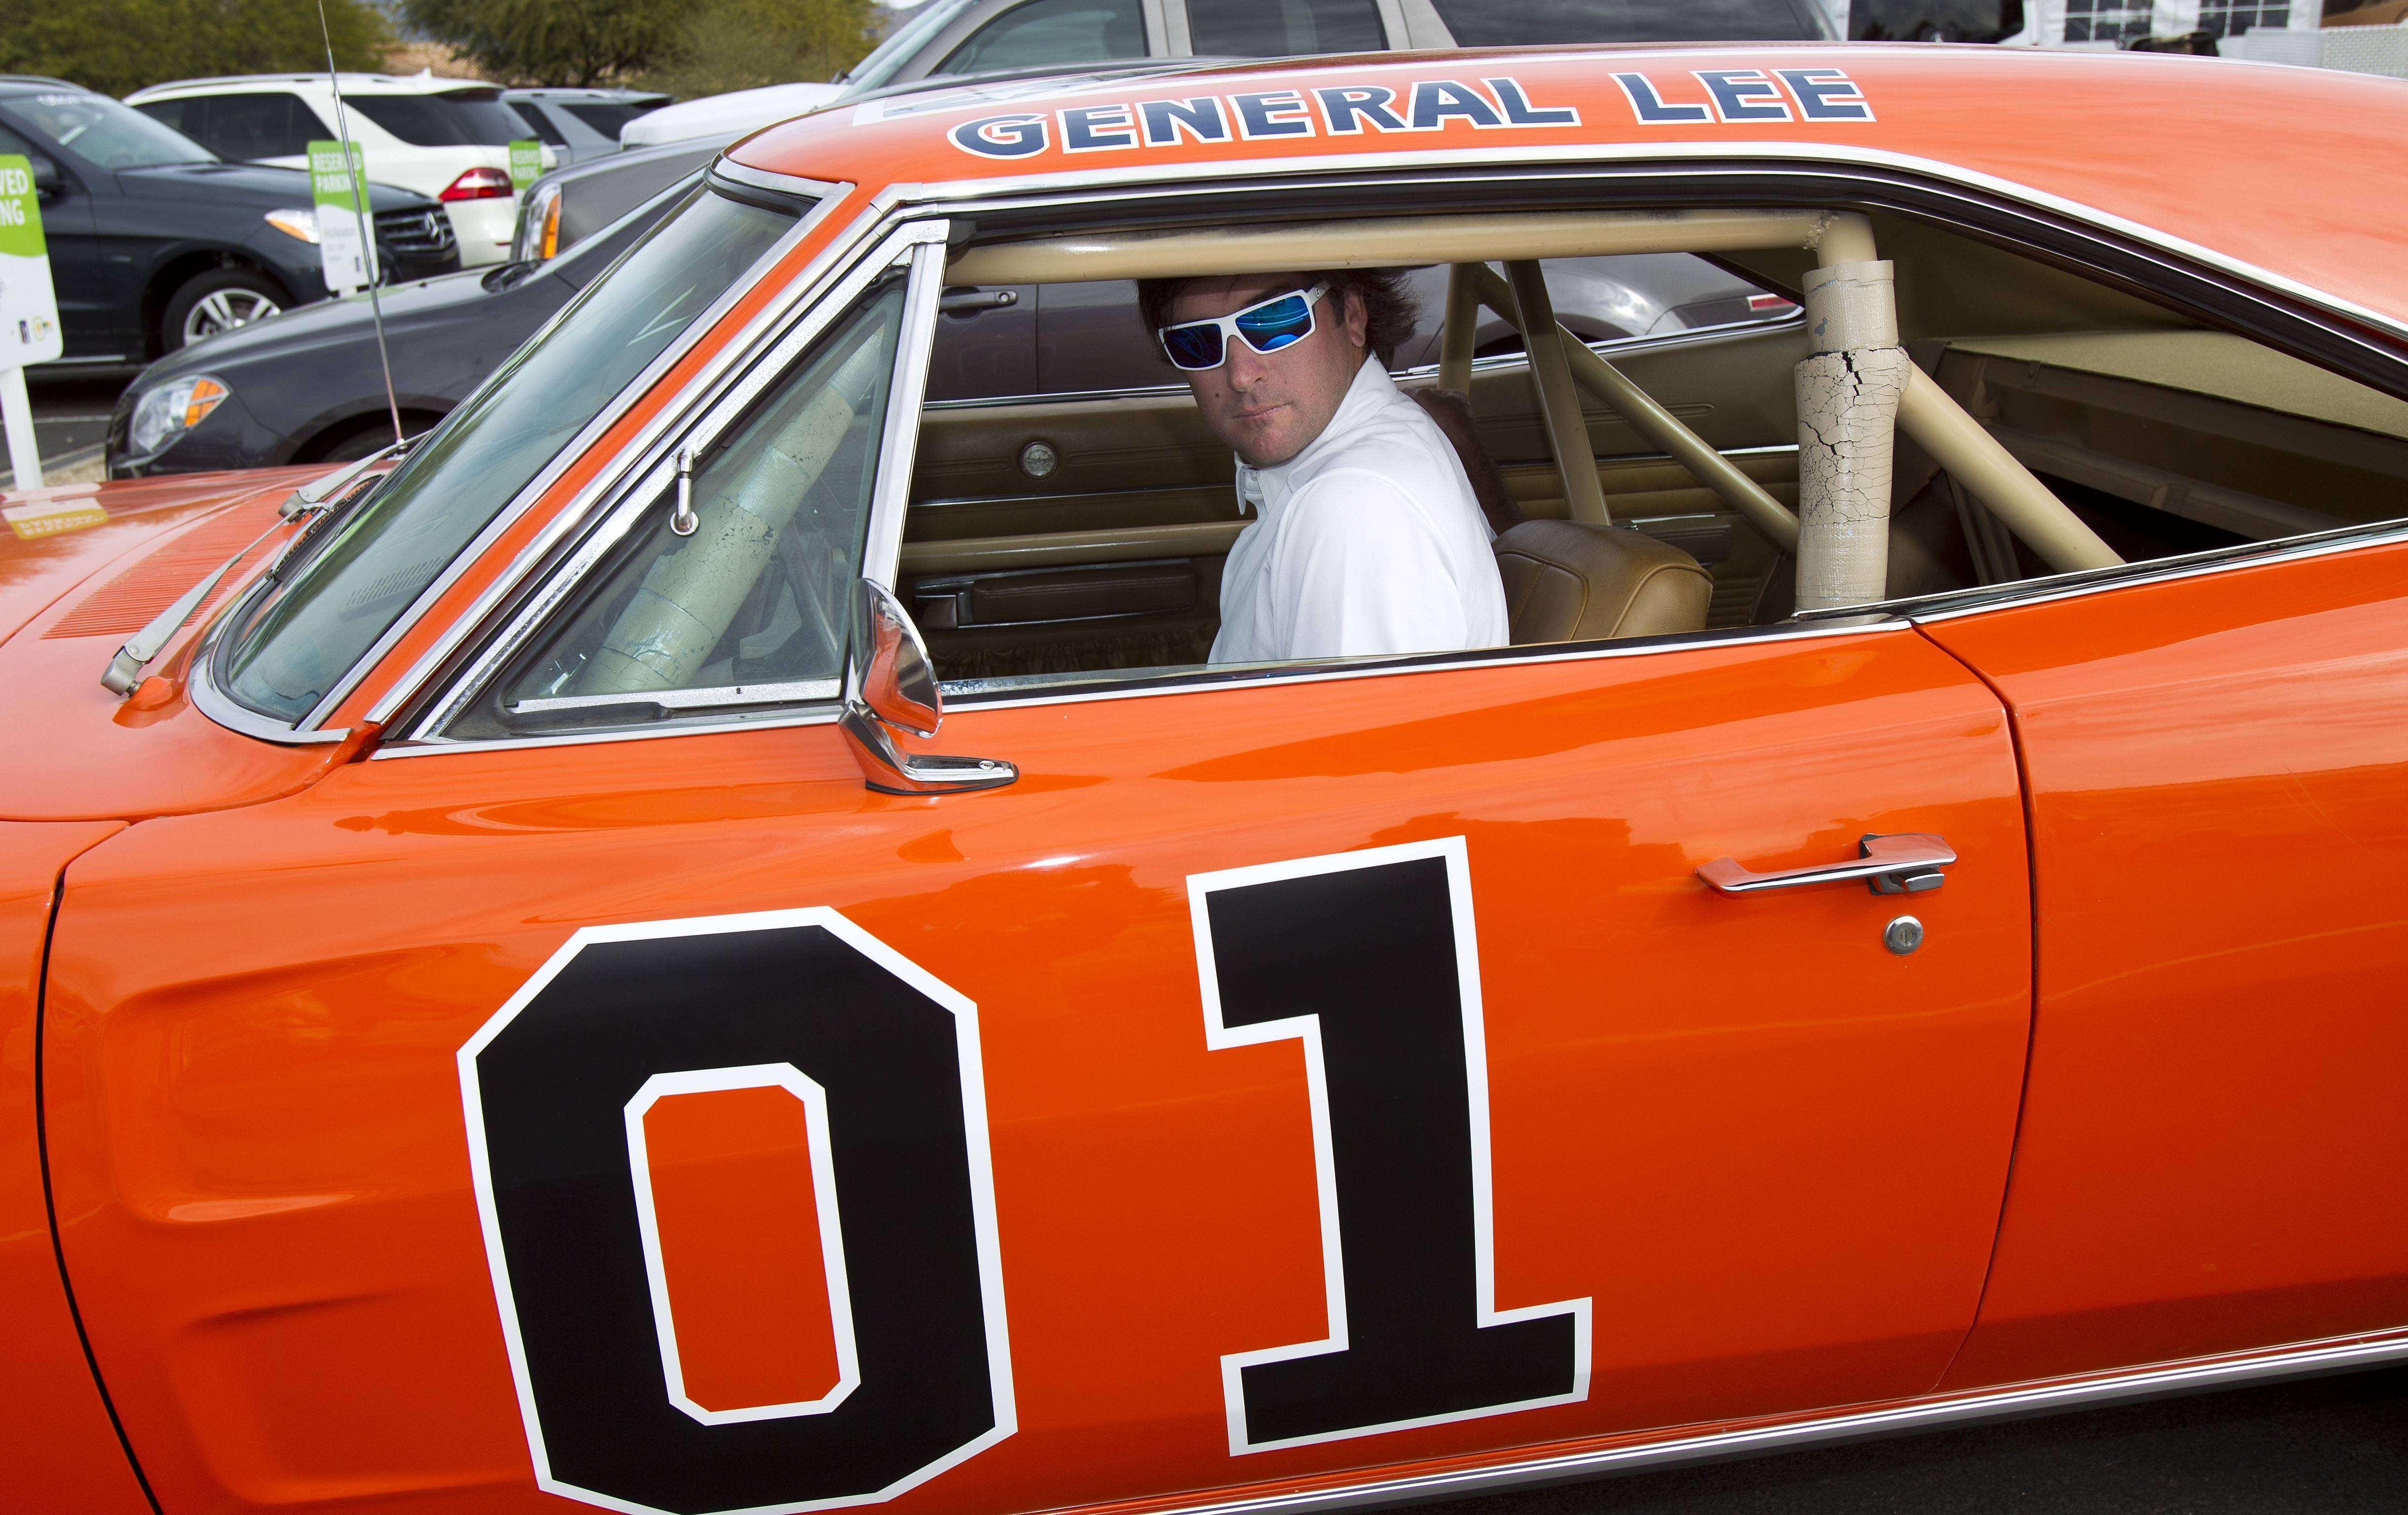 Volo museum offers to buy 1st General Lee, save flag